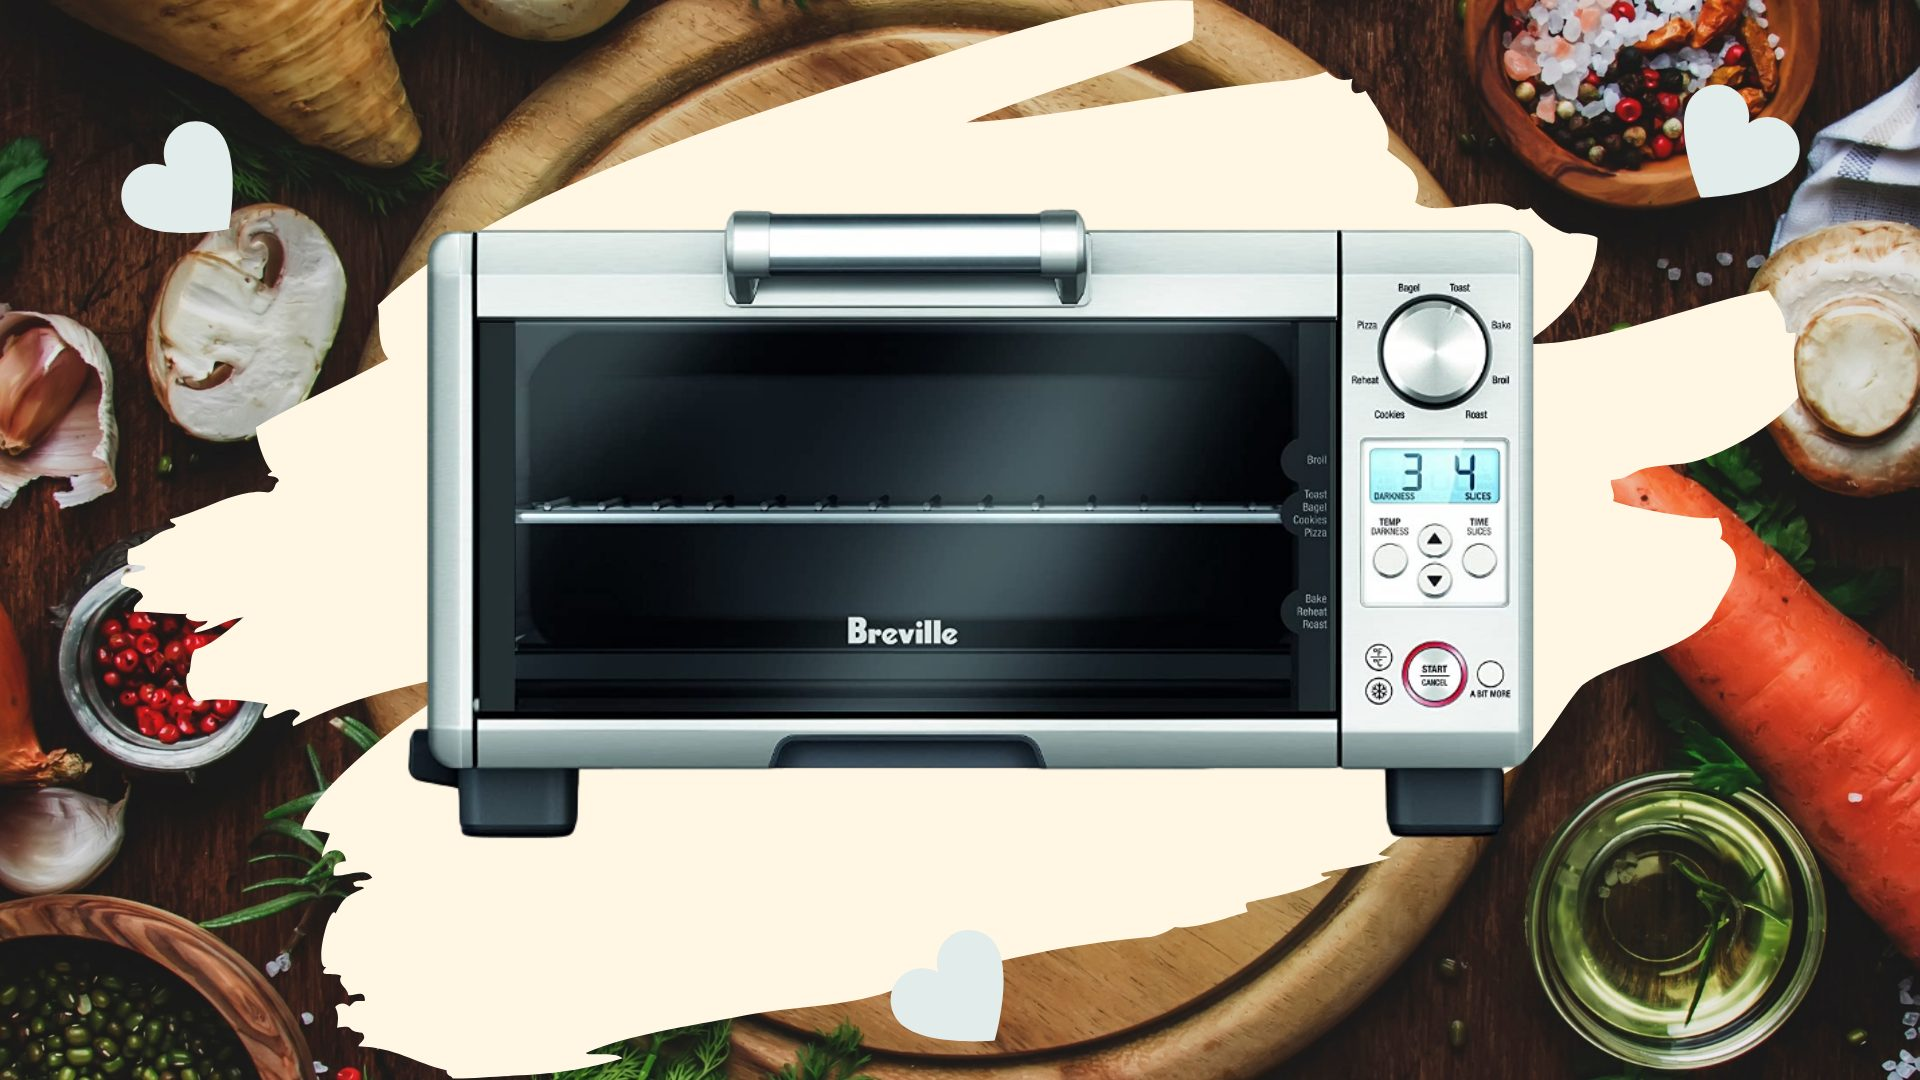 Featured Image for Breville BOV450XL Toaster Oven Review